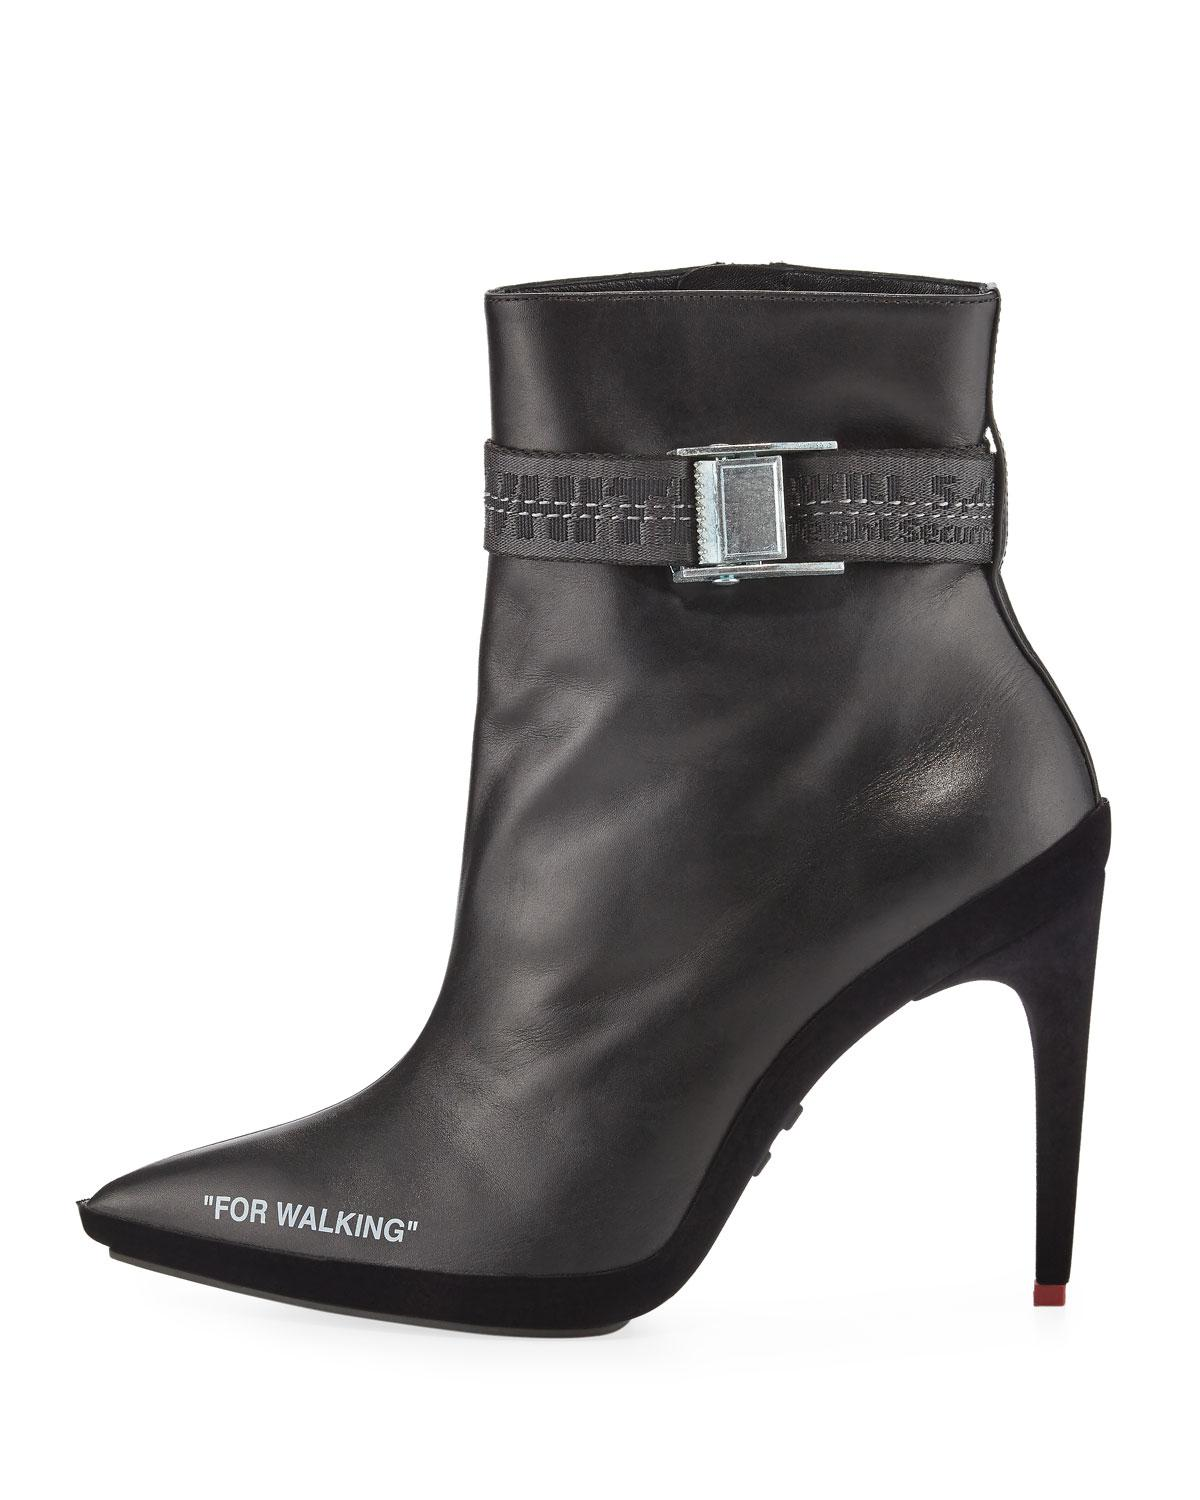 61488227941 Off-White c/o Virgil Abloh Black For Walking Leather Ankle Boots